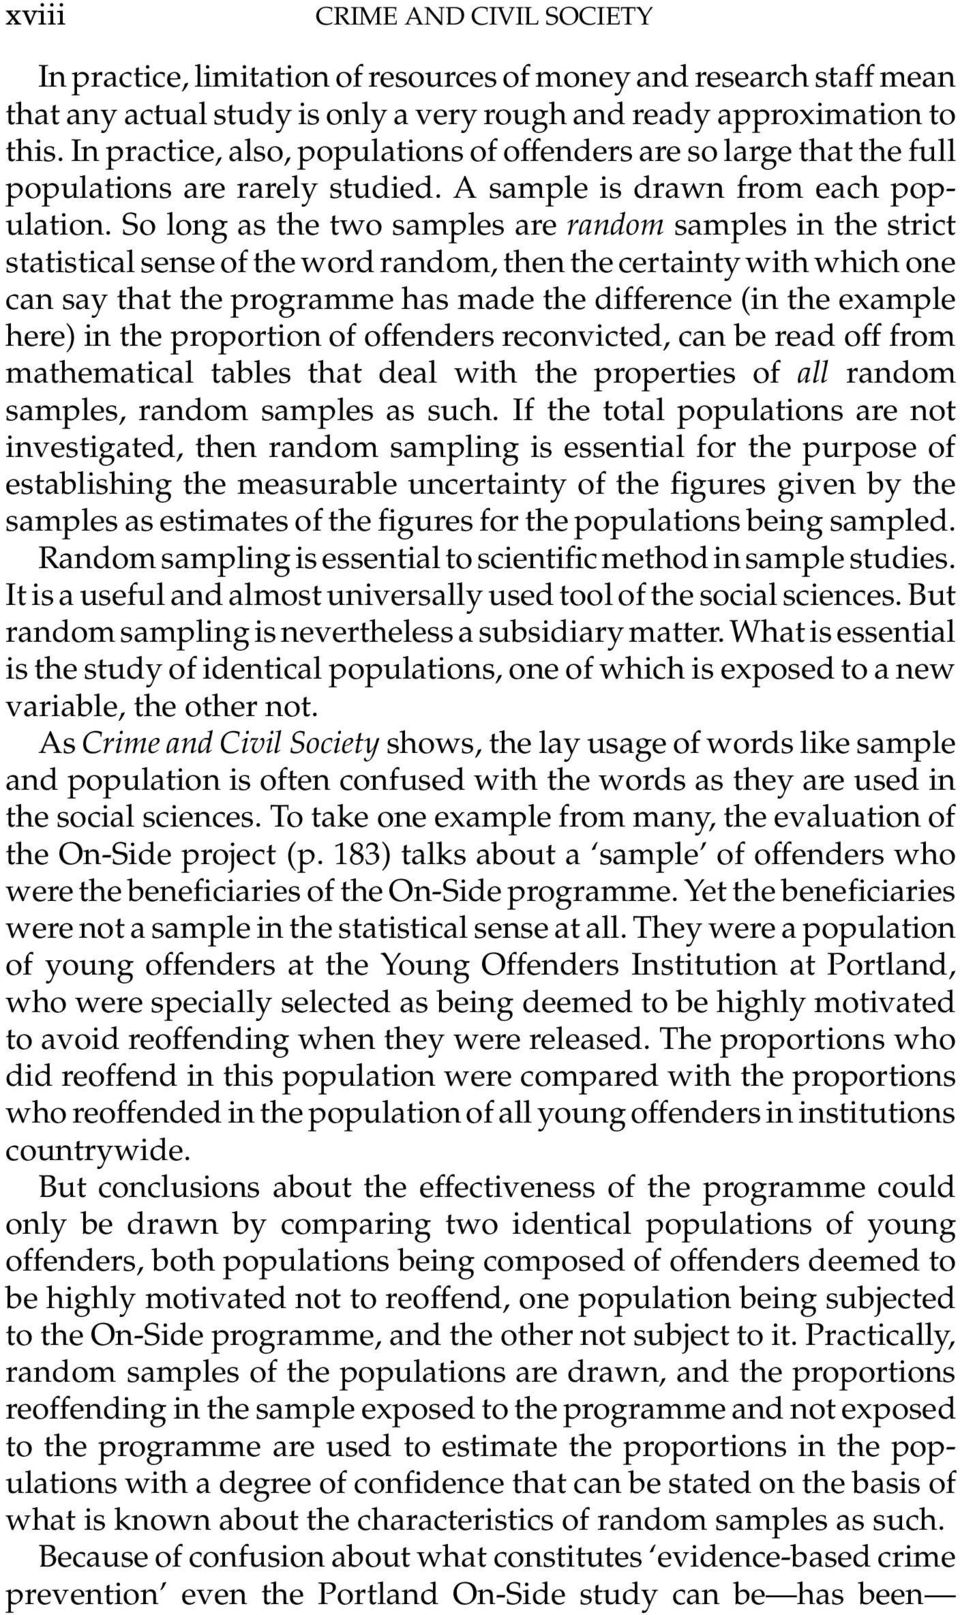 So long as the two samples are random samples in the strict statistical sense of the word random, then the certainty with which one can say that the programme has made the difference (in the example